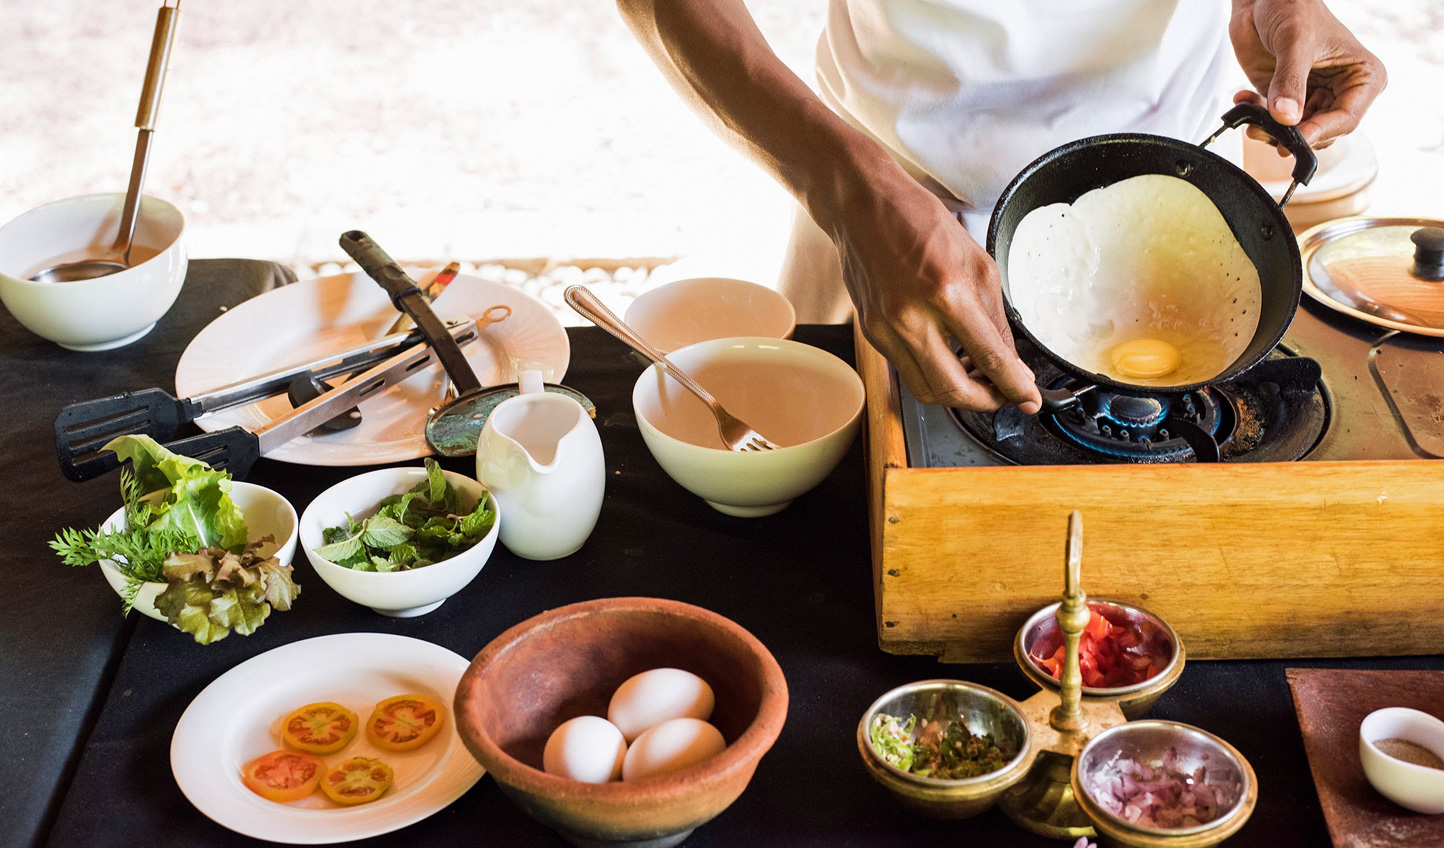 Join the chef and learn to whip up the local delicacy; Hoppers